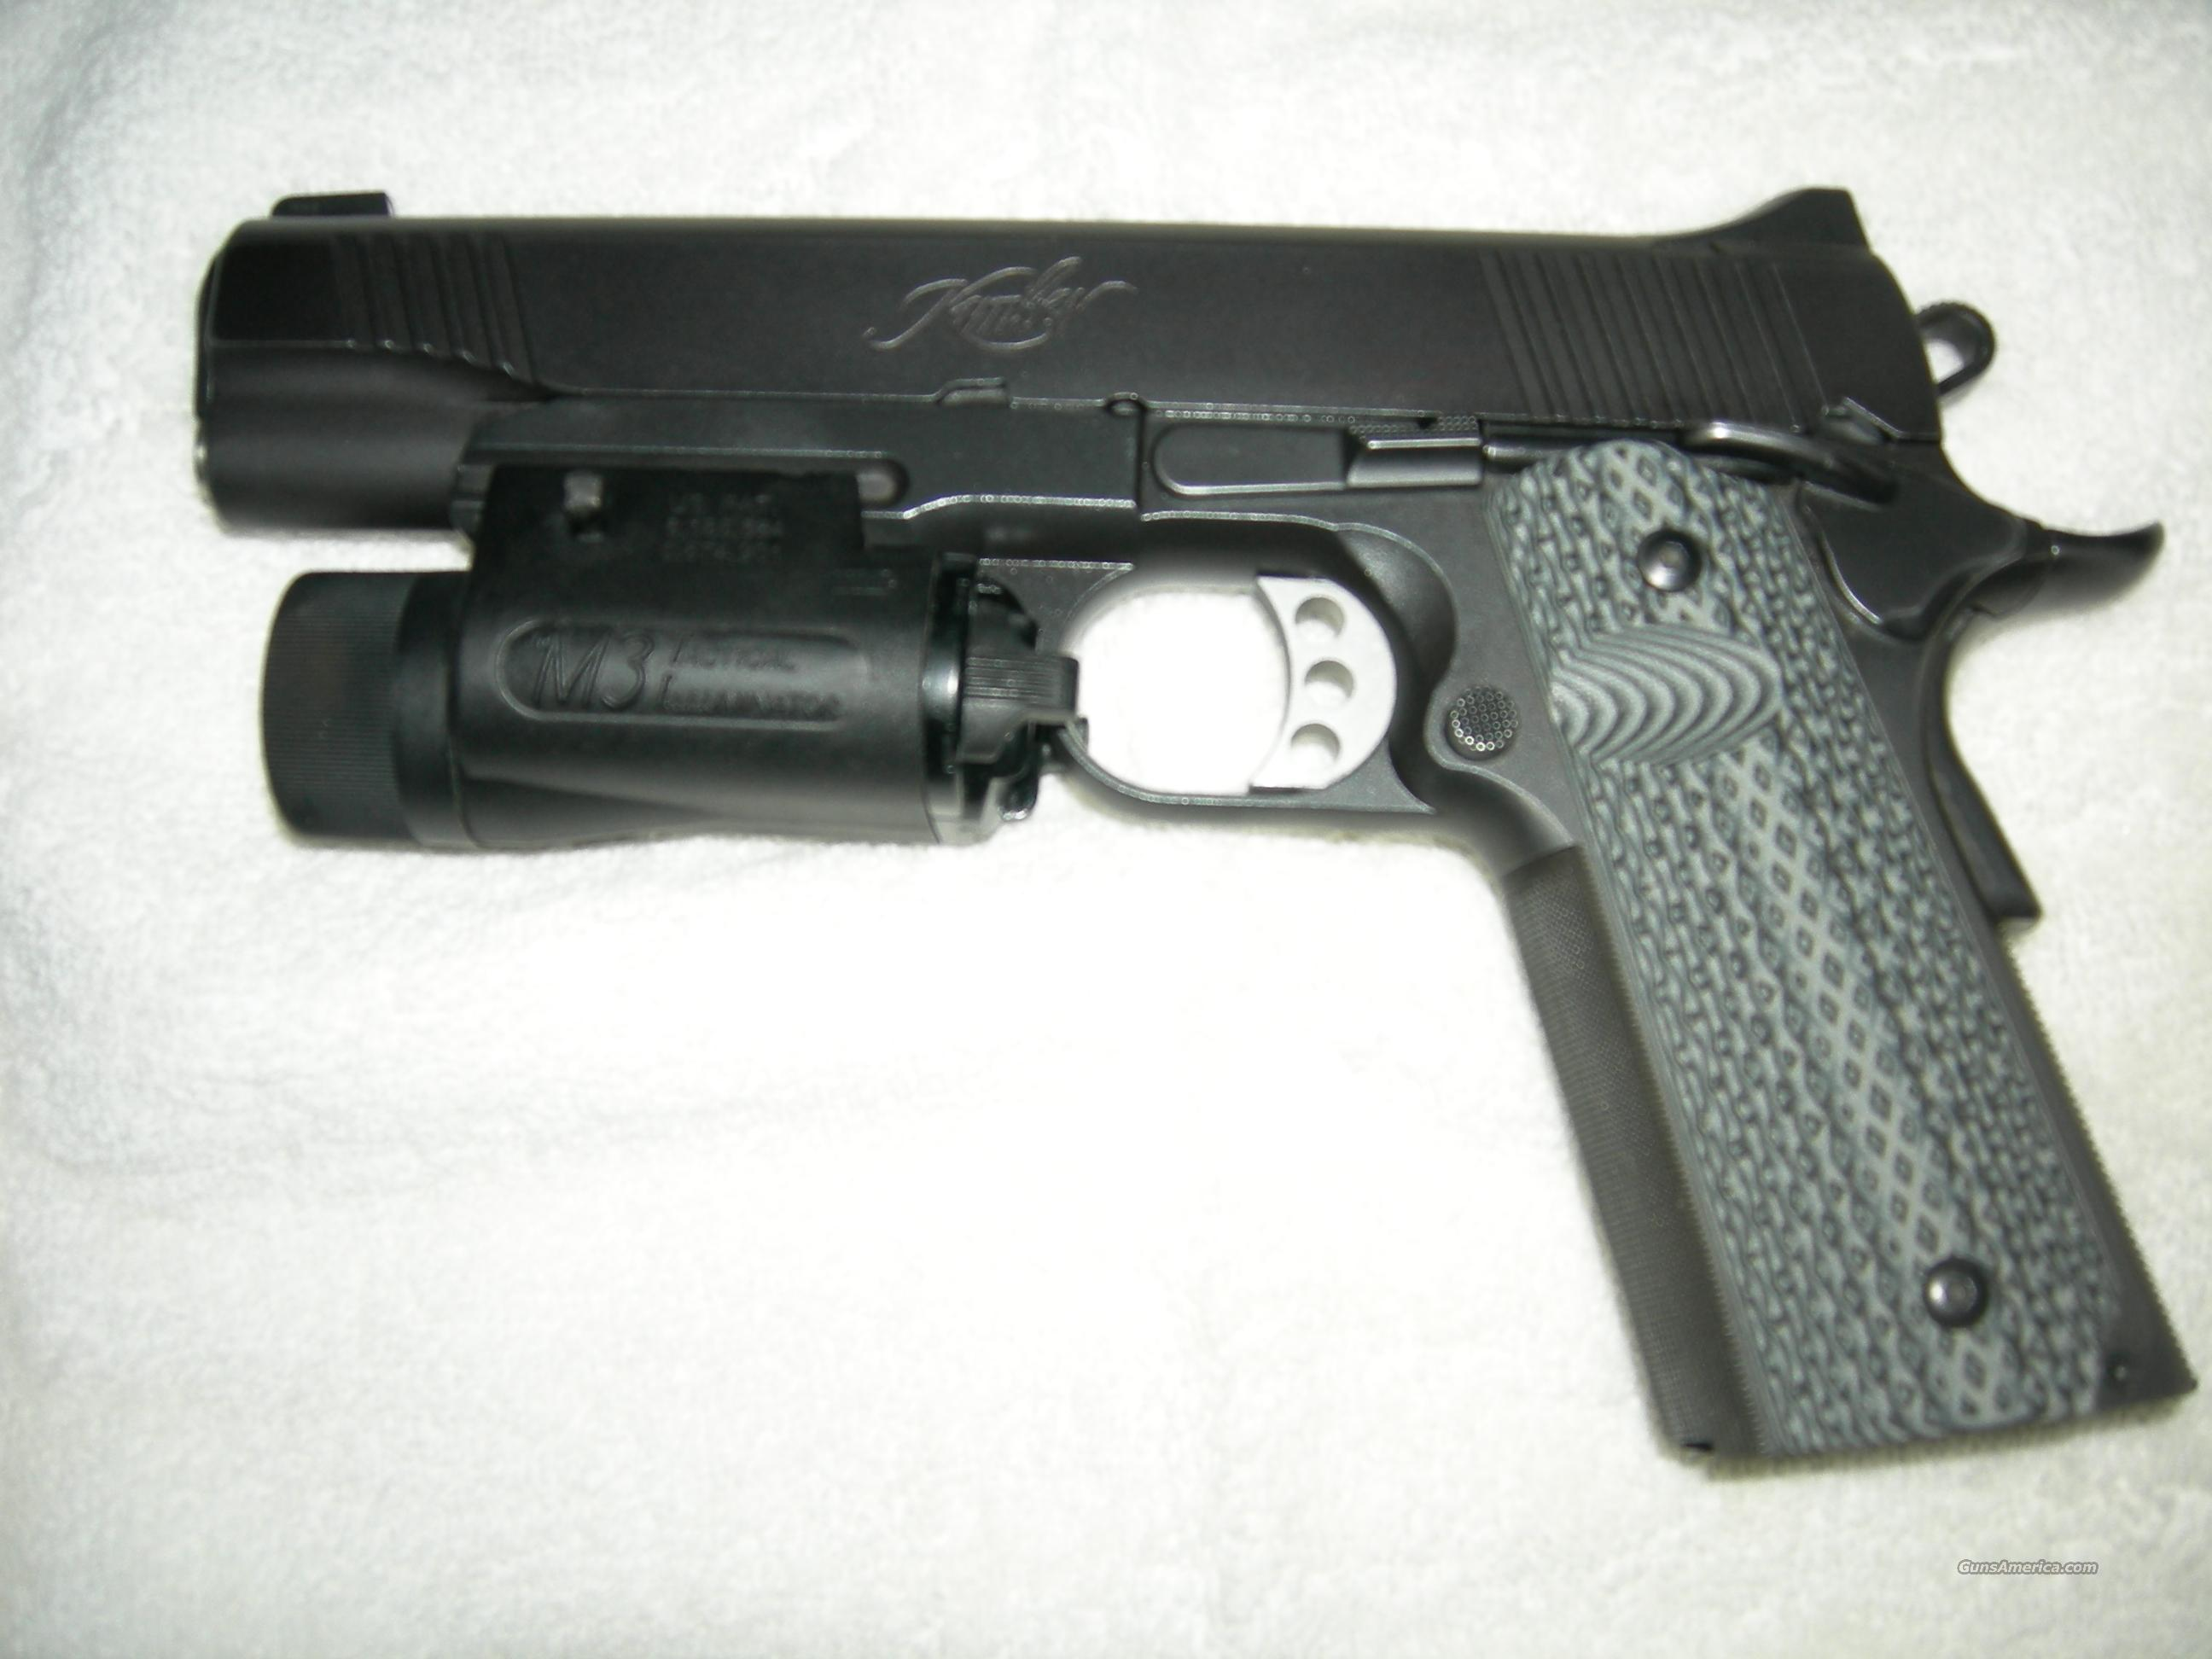 Kimber TLE With Rail and Light  Guns > Pistols > 1911 Pistol Copies (non-Colt)